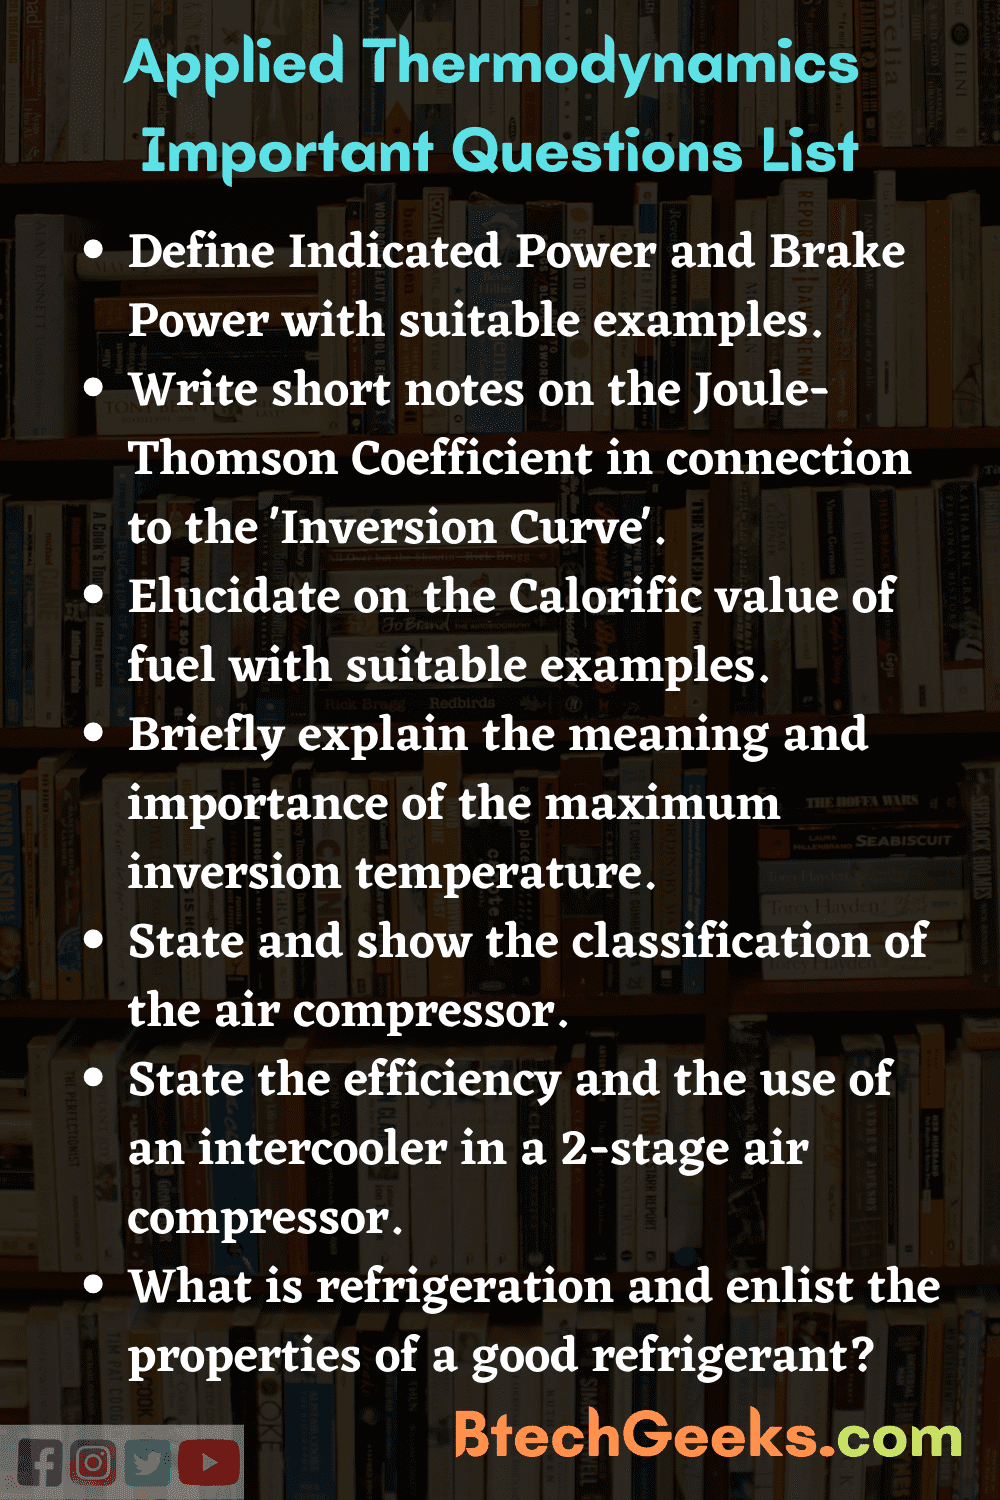 Applied Thermodynamics Important Questions